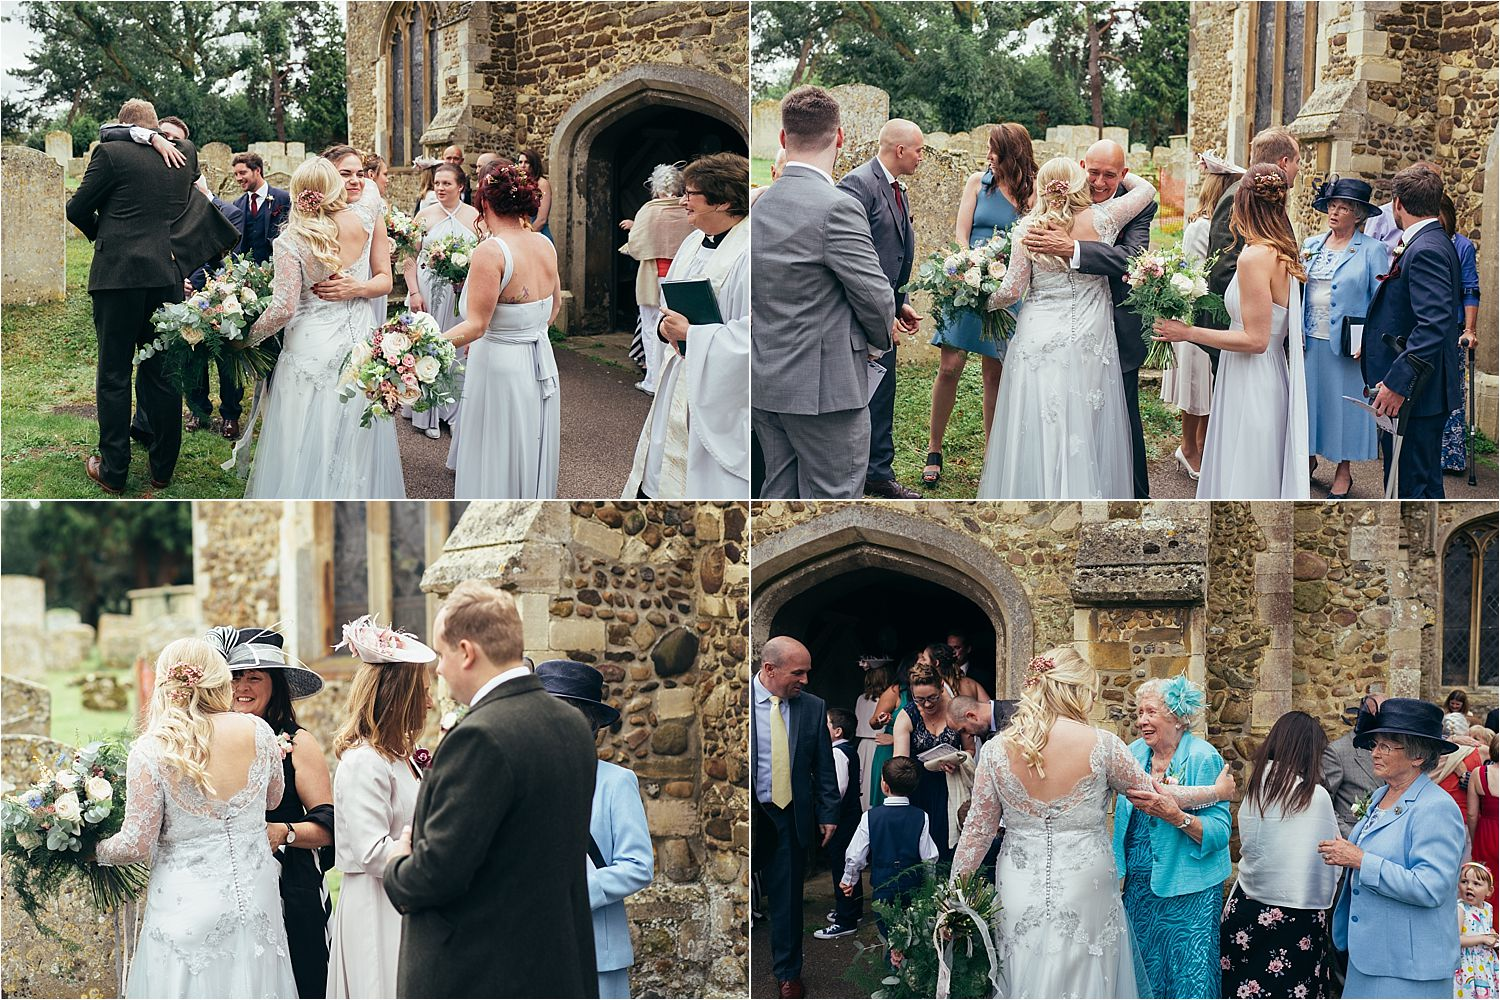 Bride and groom greet guests outside church after Bedfordshire wedding